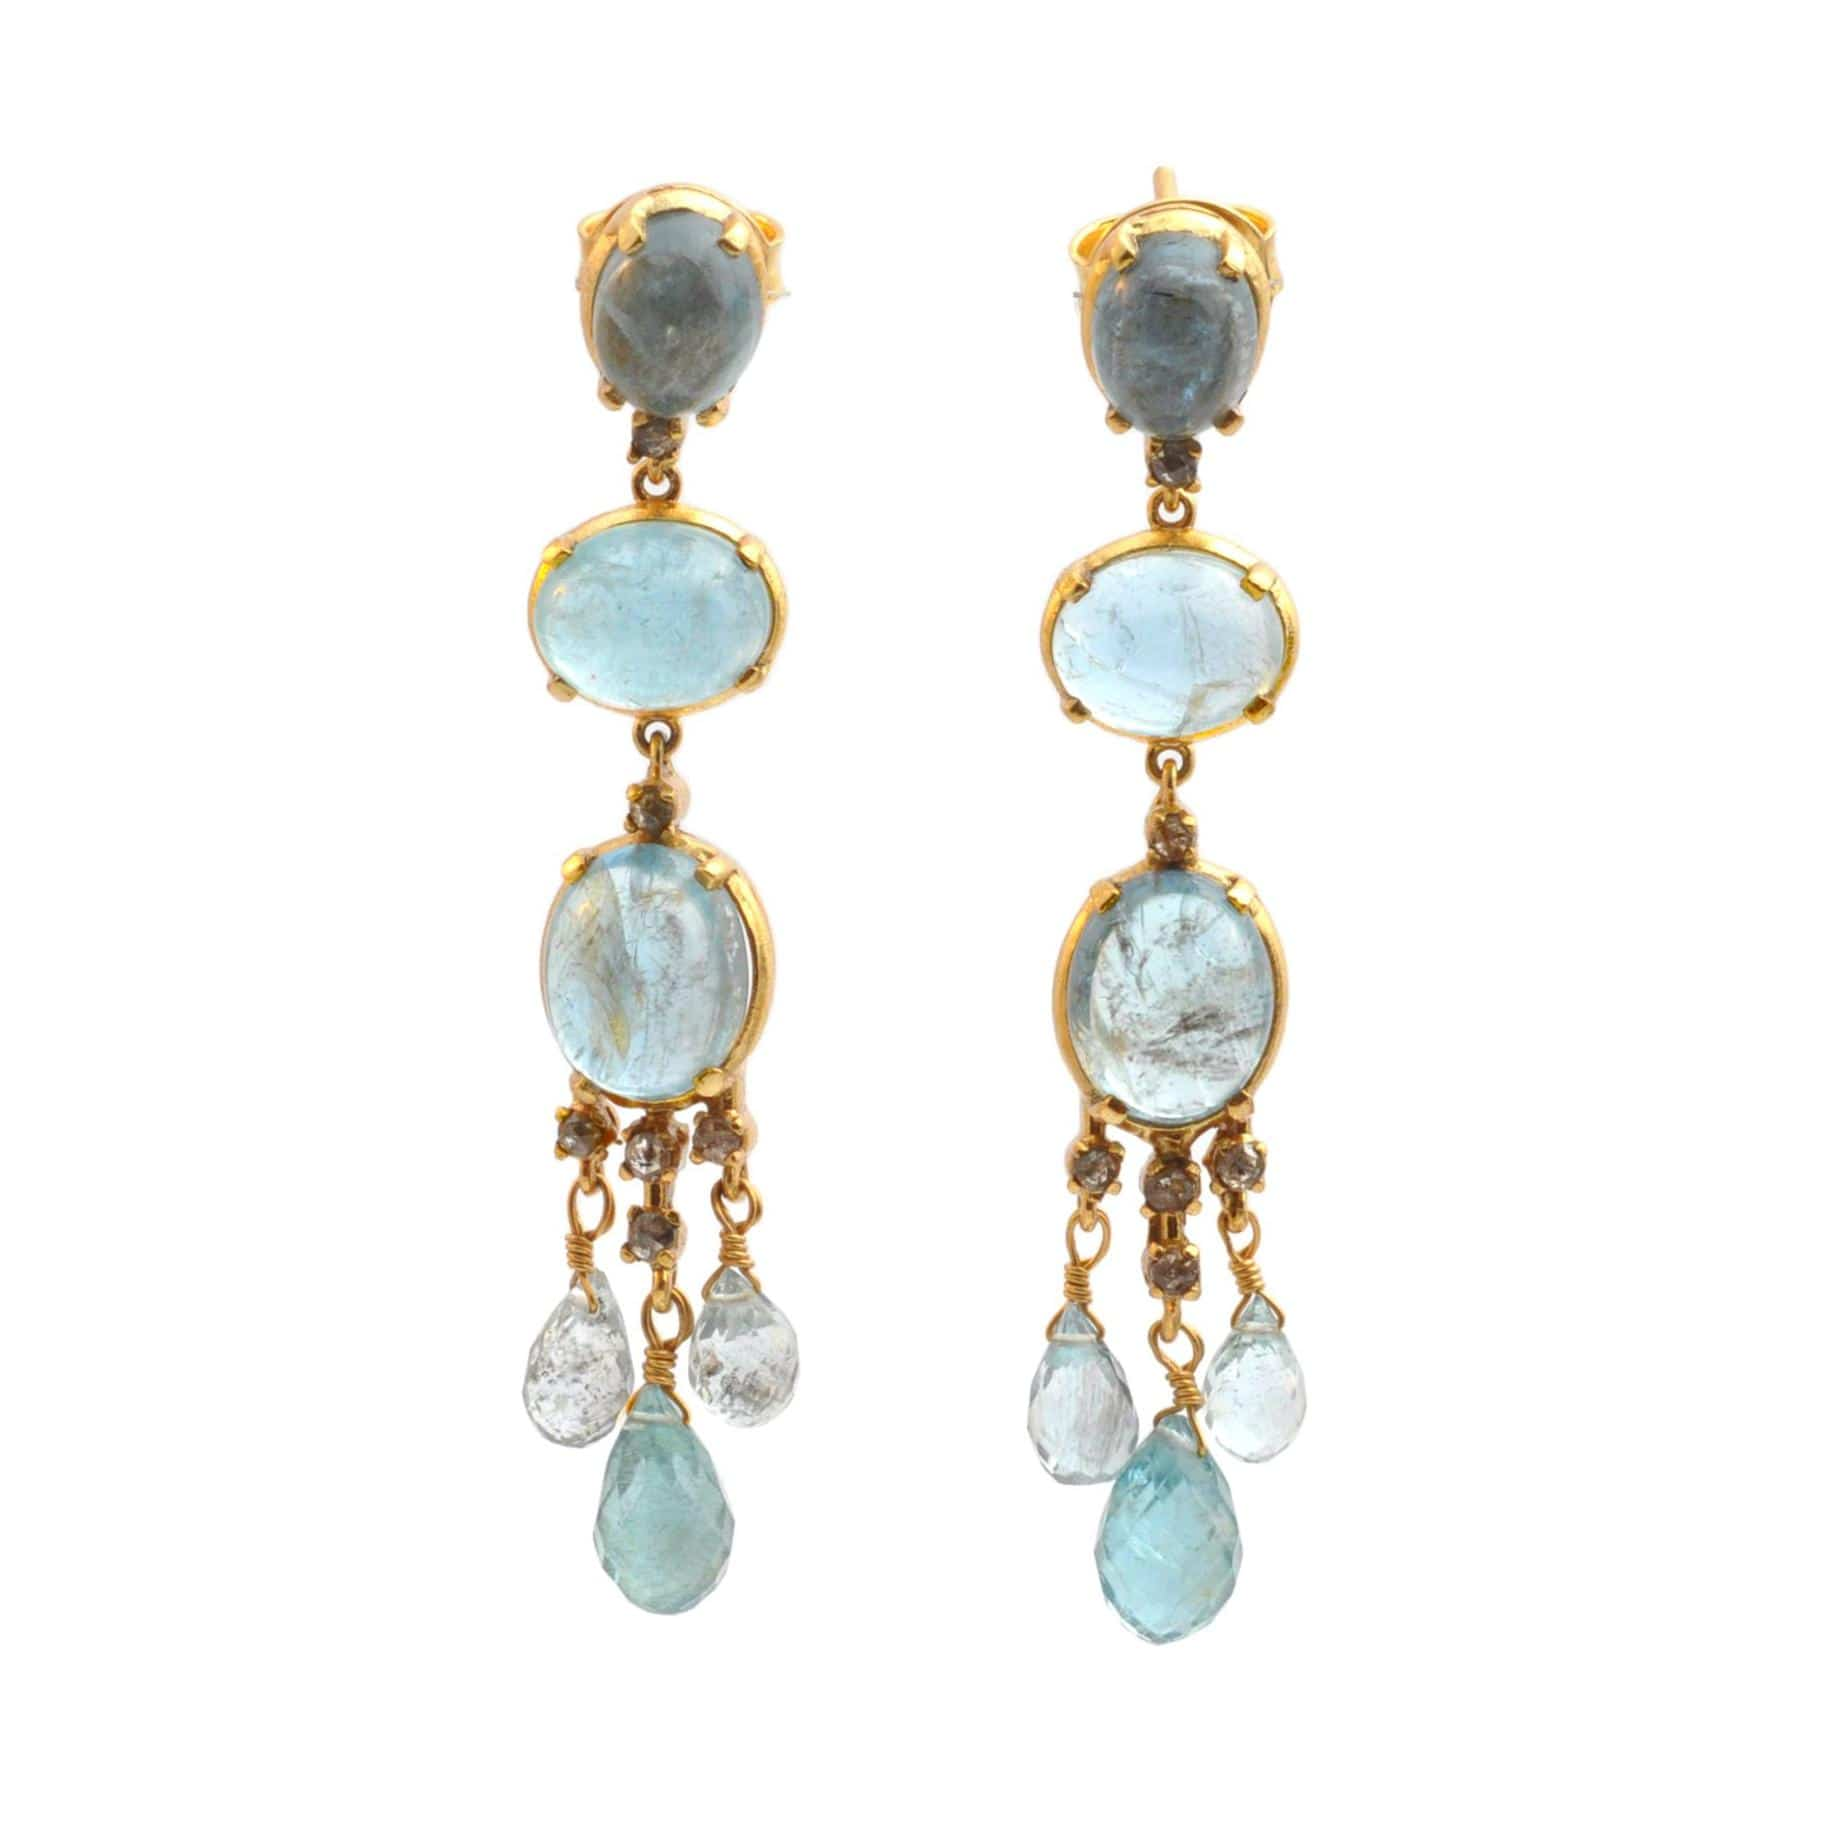 jewellery xl product bride lara gold in earrings bhldn chandelier a zoom